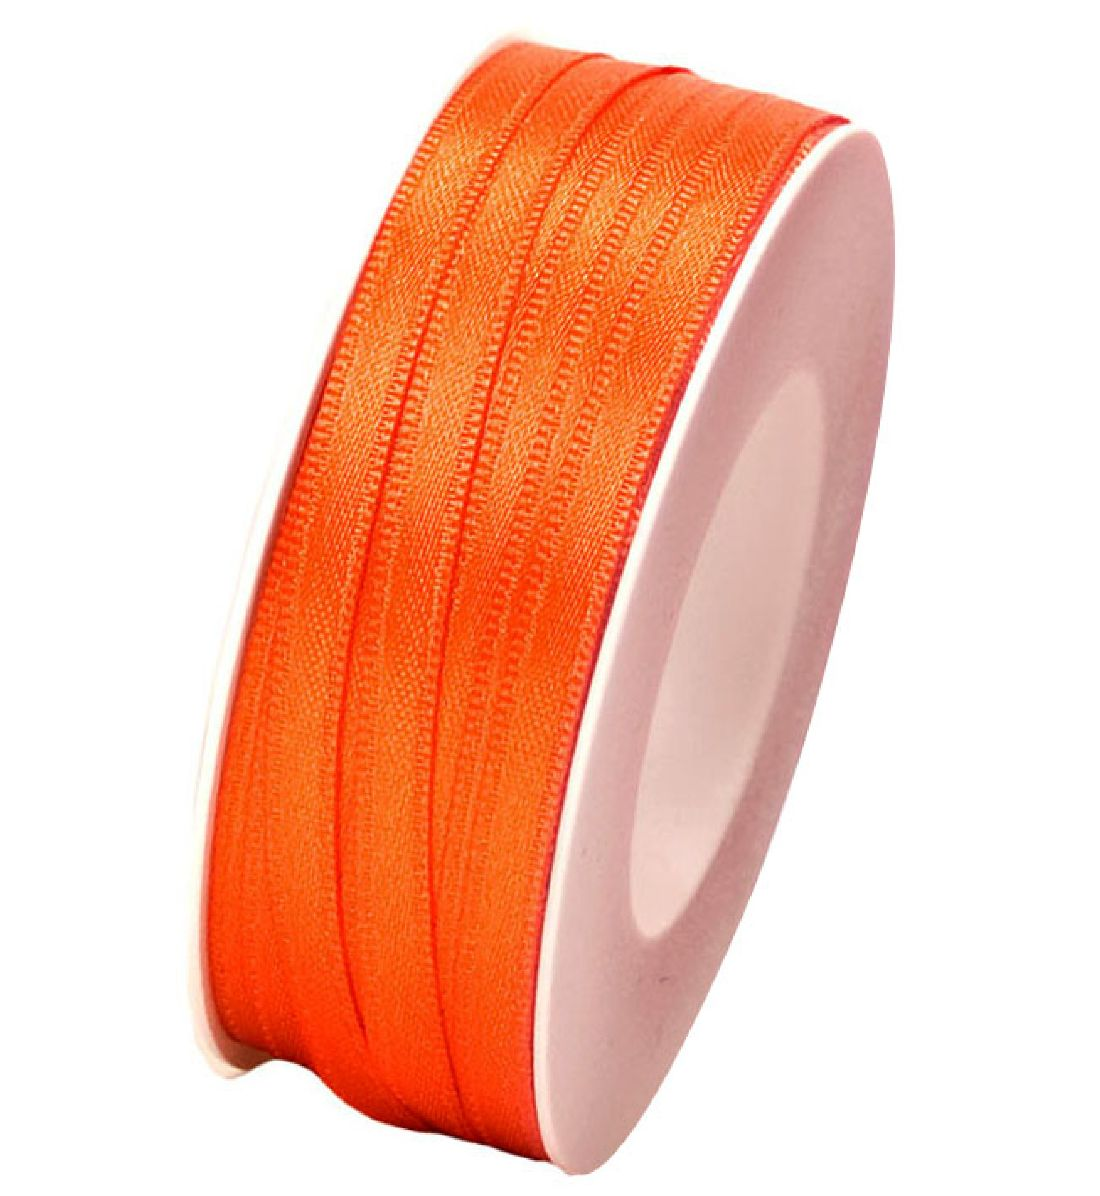 Doppelsatin ORANGE 40 6mm 50m